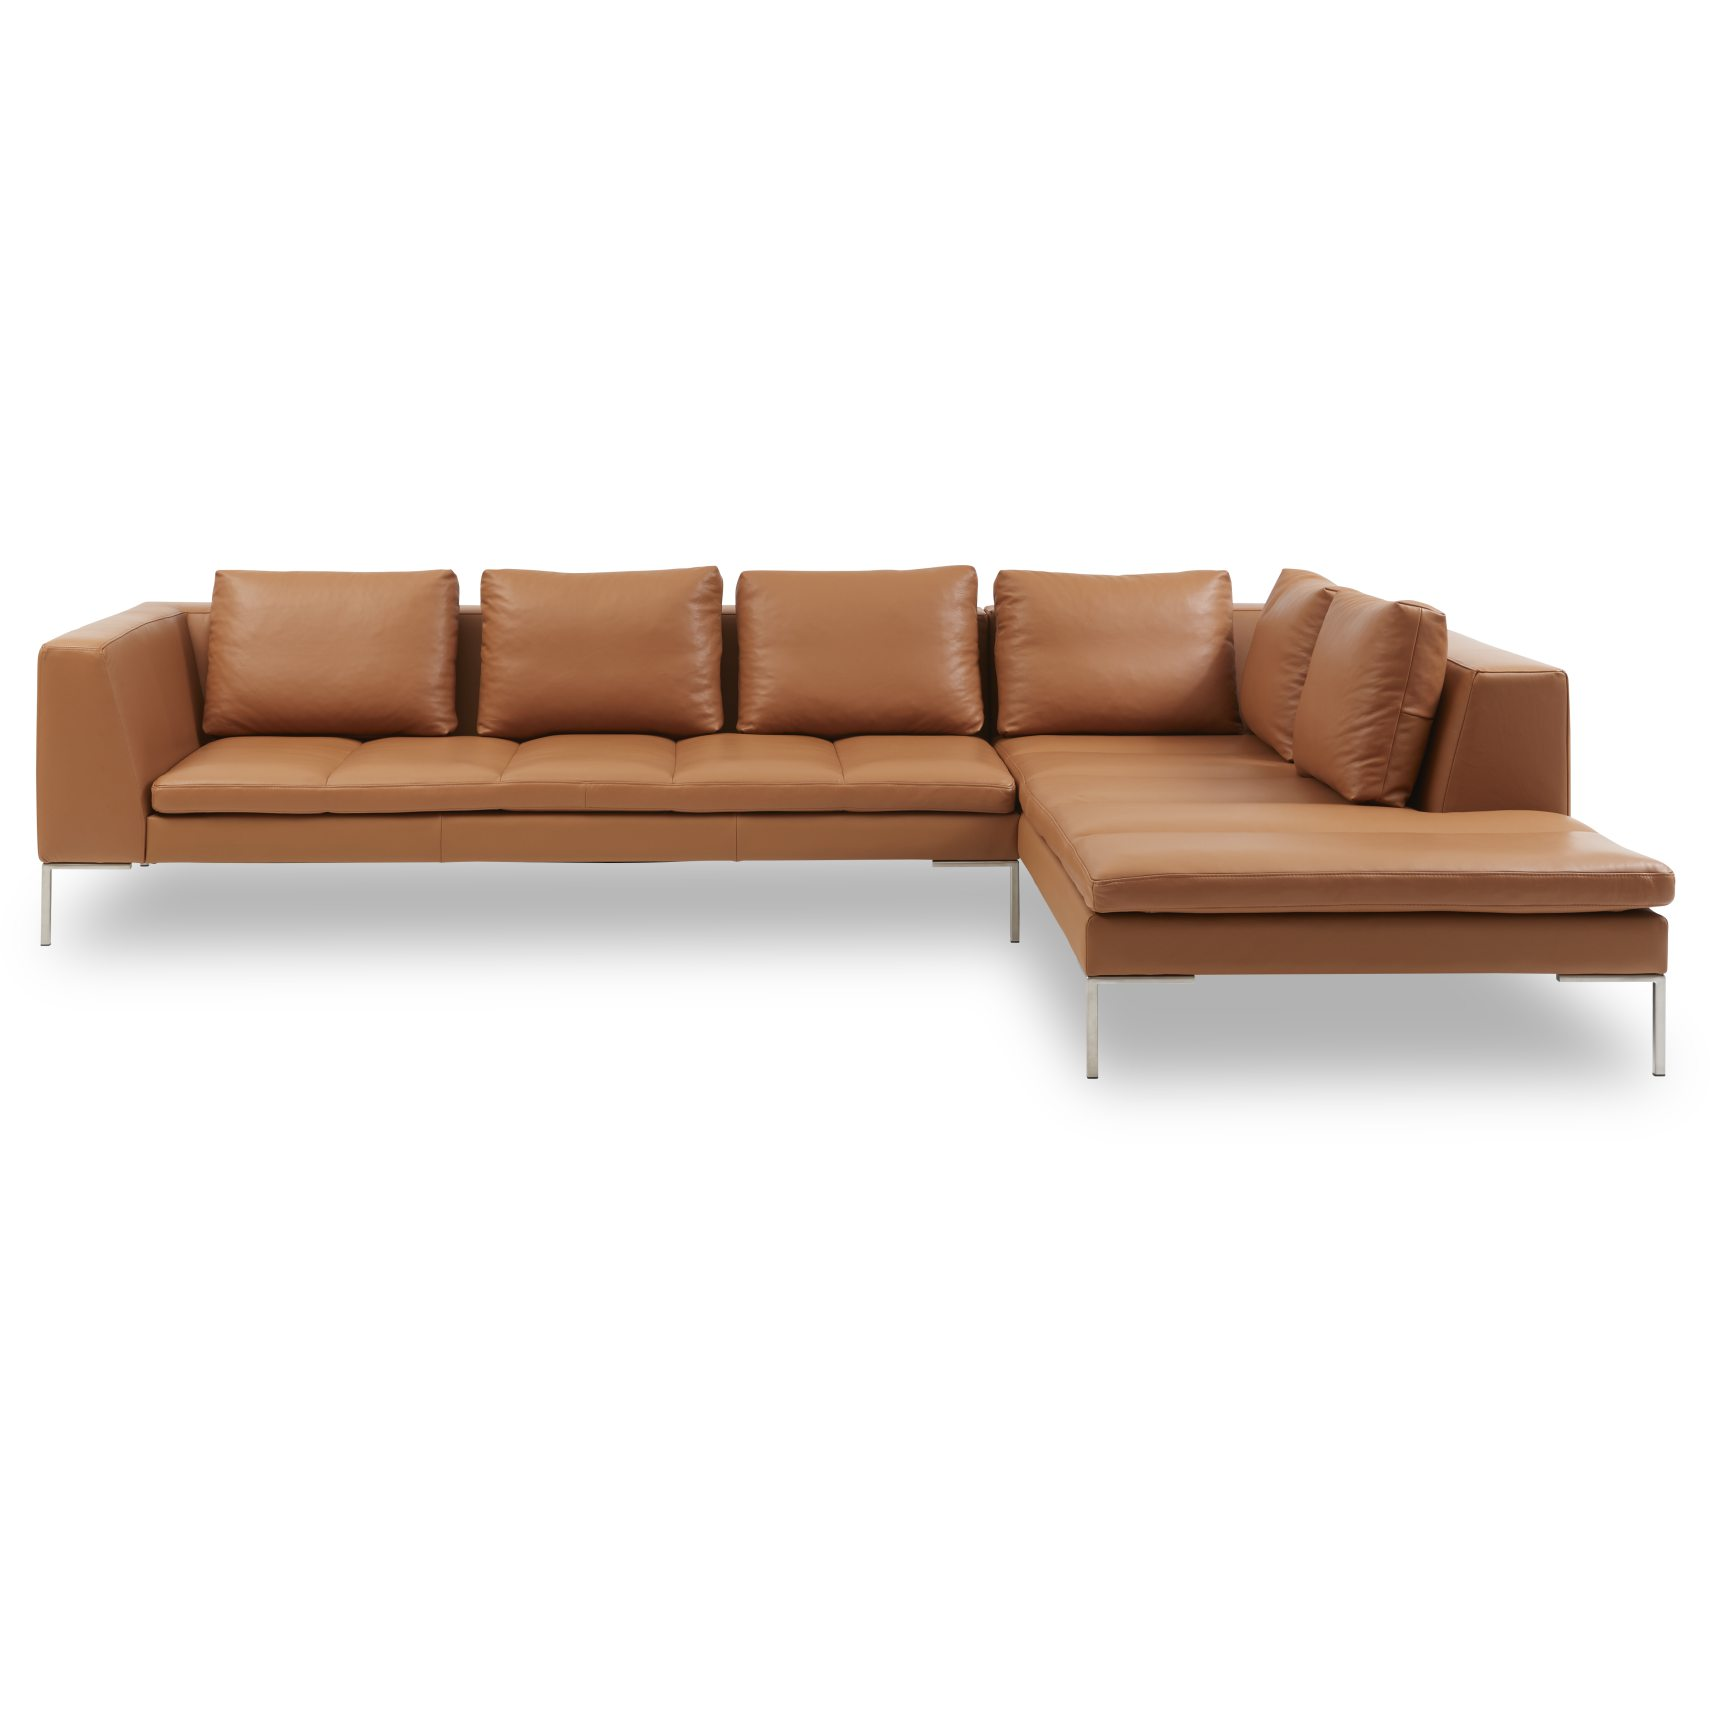 sofa leder cognac excellent easton collection with sofa. Black Bedroom Furniture Sets. Home Design Ideas